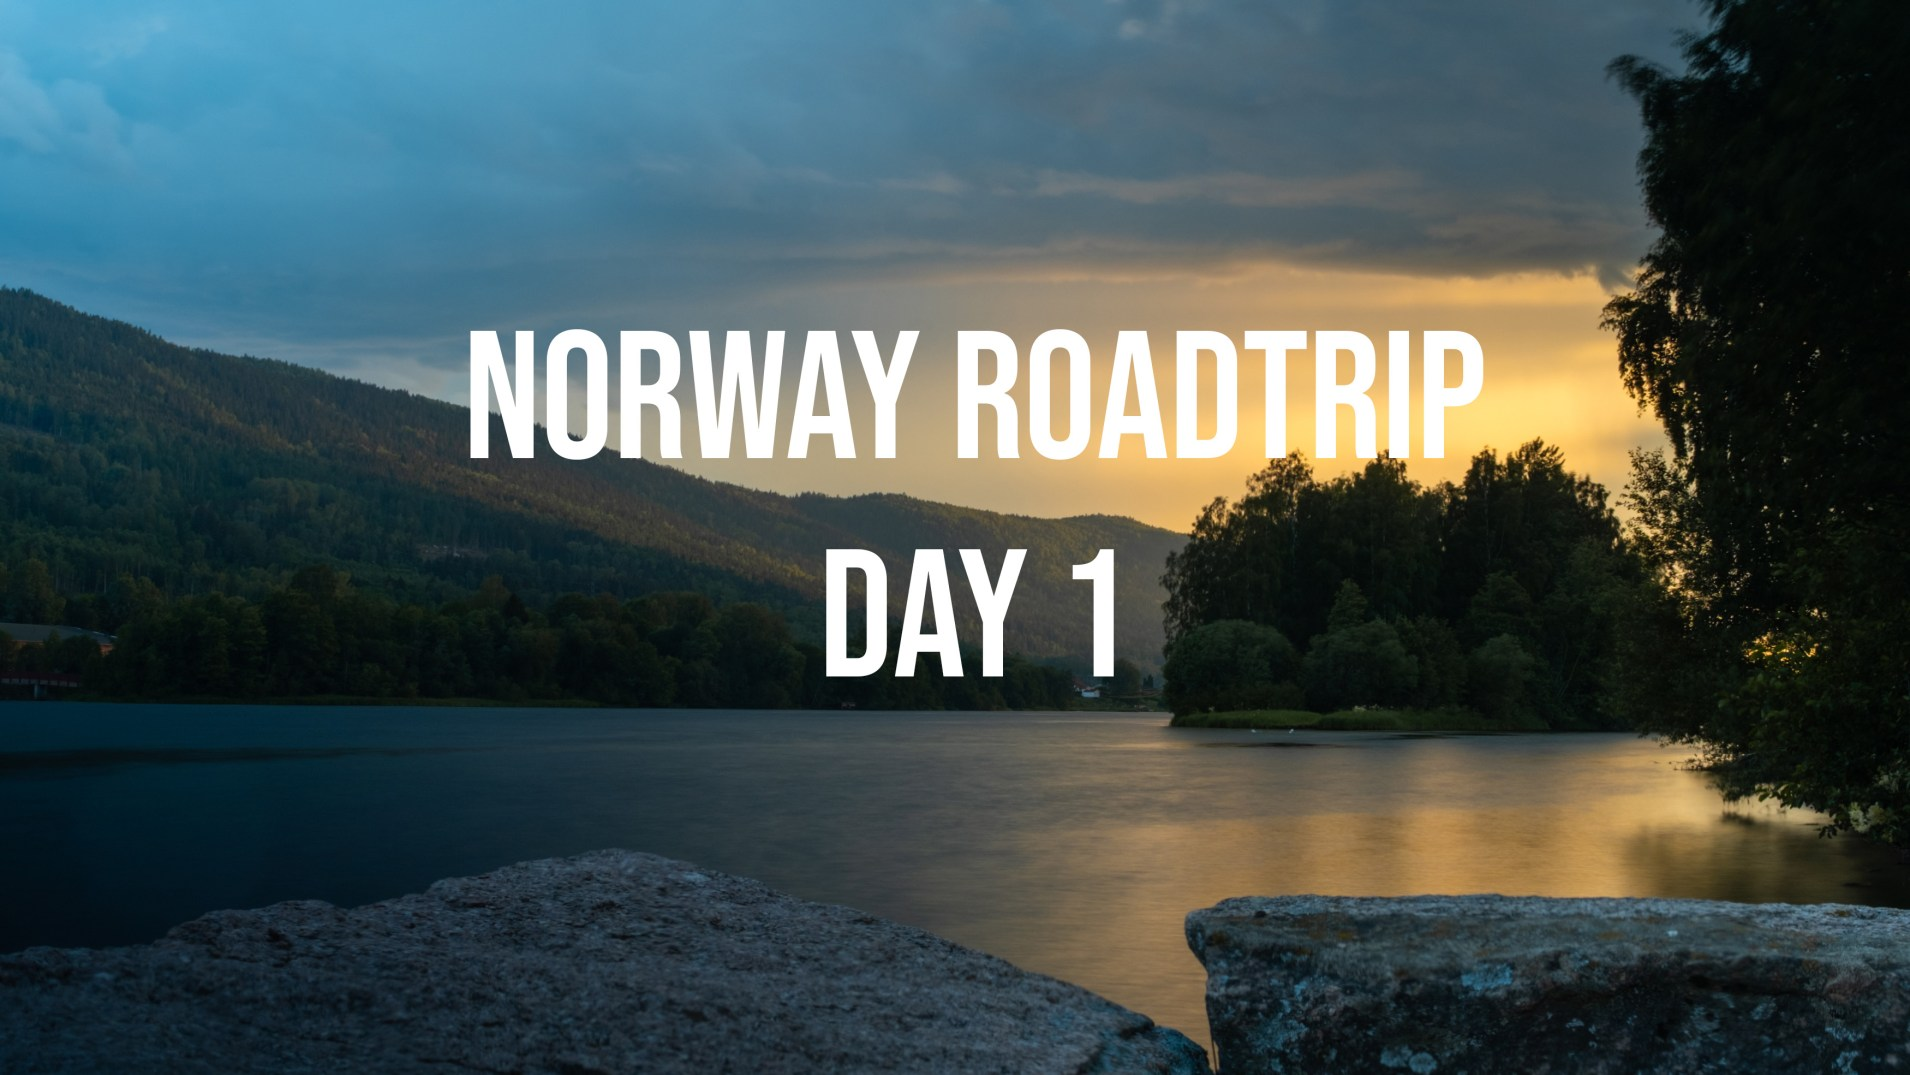 The first day of our Norway roadtrip. New Vlog!